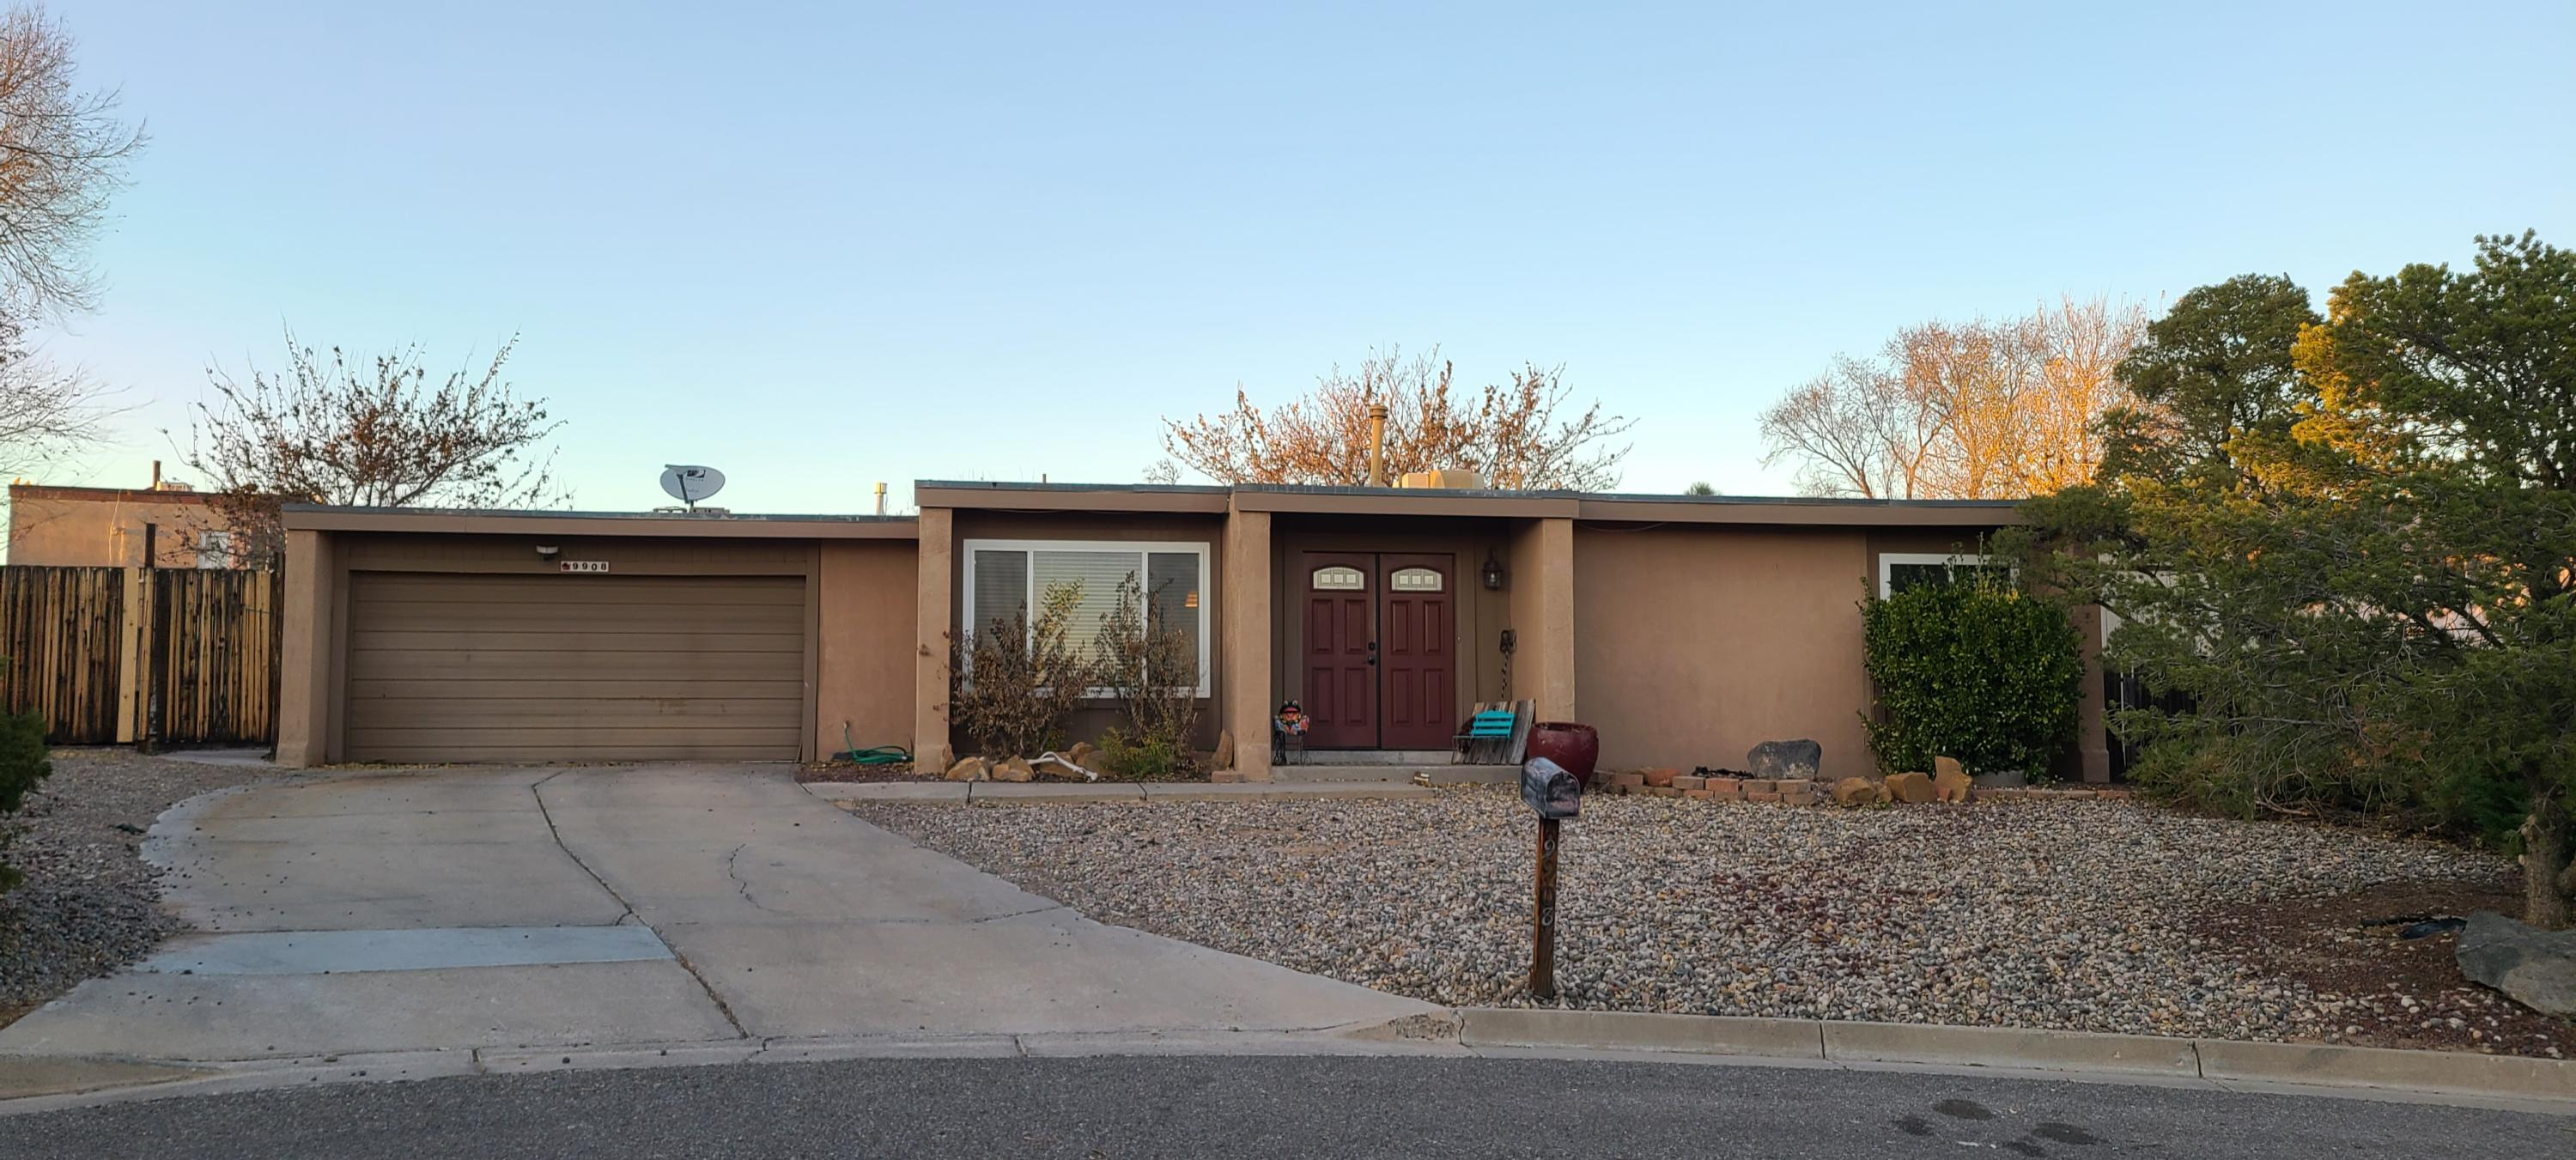 Wonderful 3 Bedroom/2 Bath Home with an Office (possible 4th bedroom) in a cul-de-sac.  2 Car Garage.  Open Kitchen. Large Back Yard with a  Fireplace on the cozy Covered Patio.  Detached Insulated/Carpeted 12'x20' (240sf) bonus space (shed).  2nd 10'x10' storage shed as well.